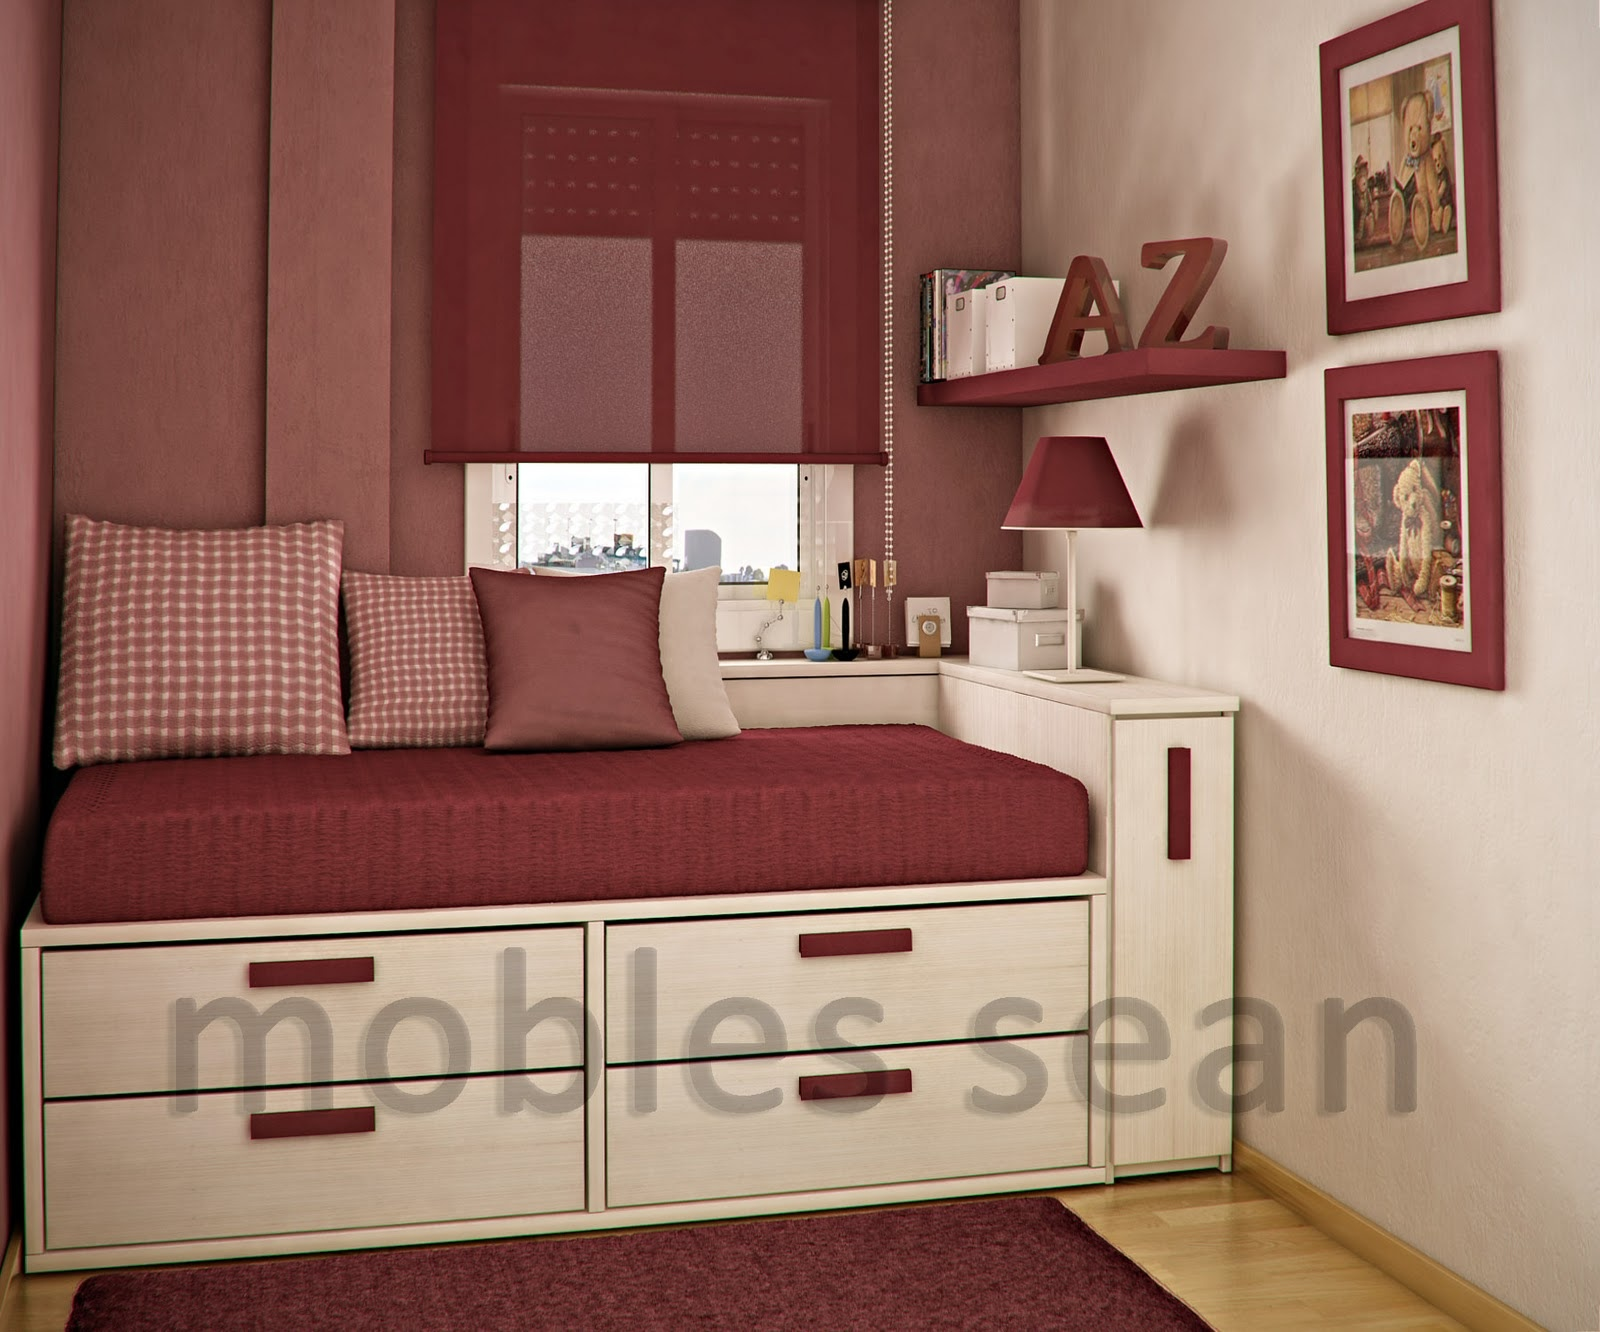 Space saving designs for small kids rooms - What to do with small spaces set ...